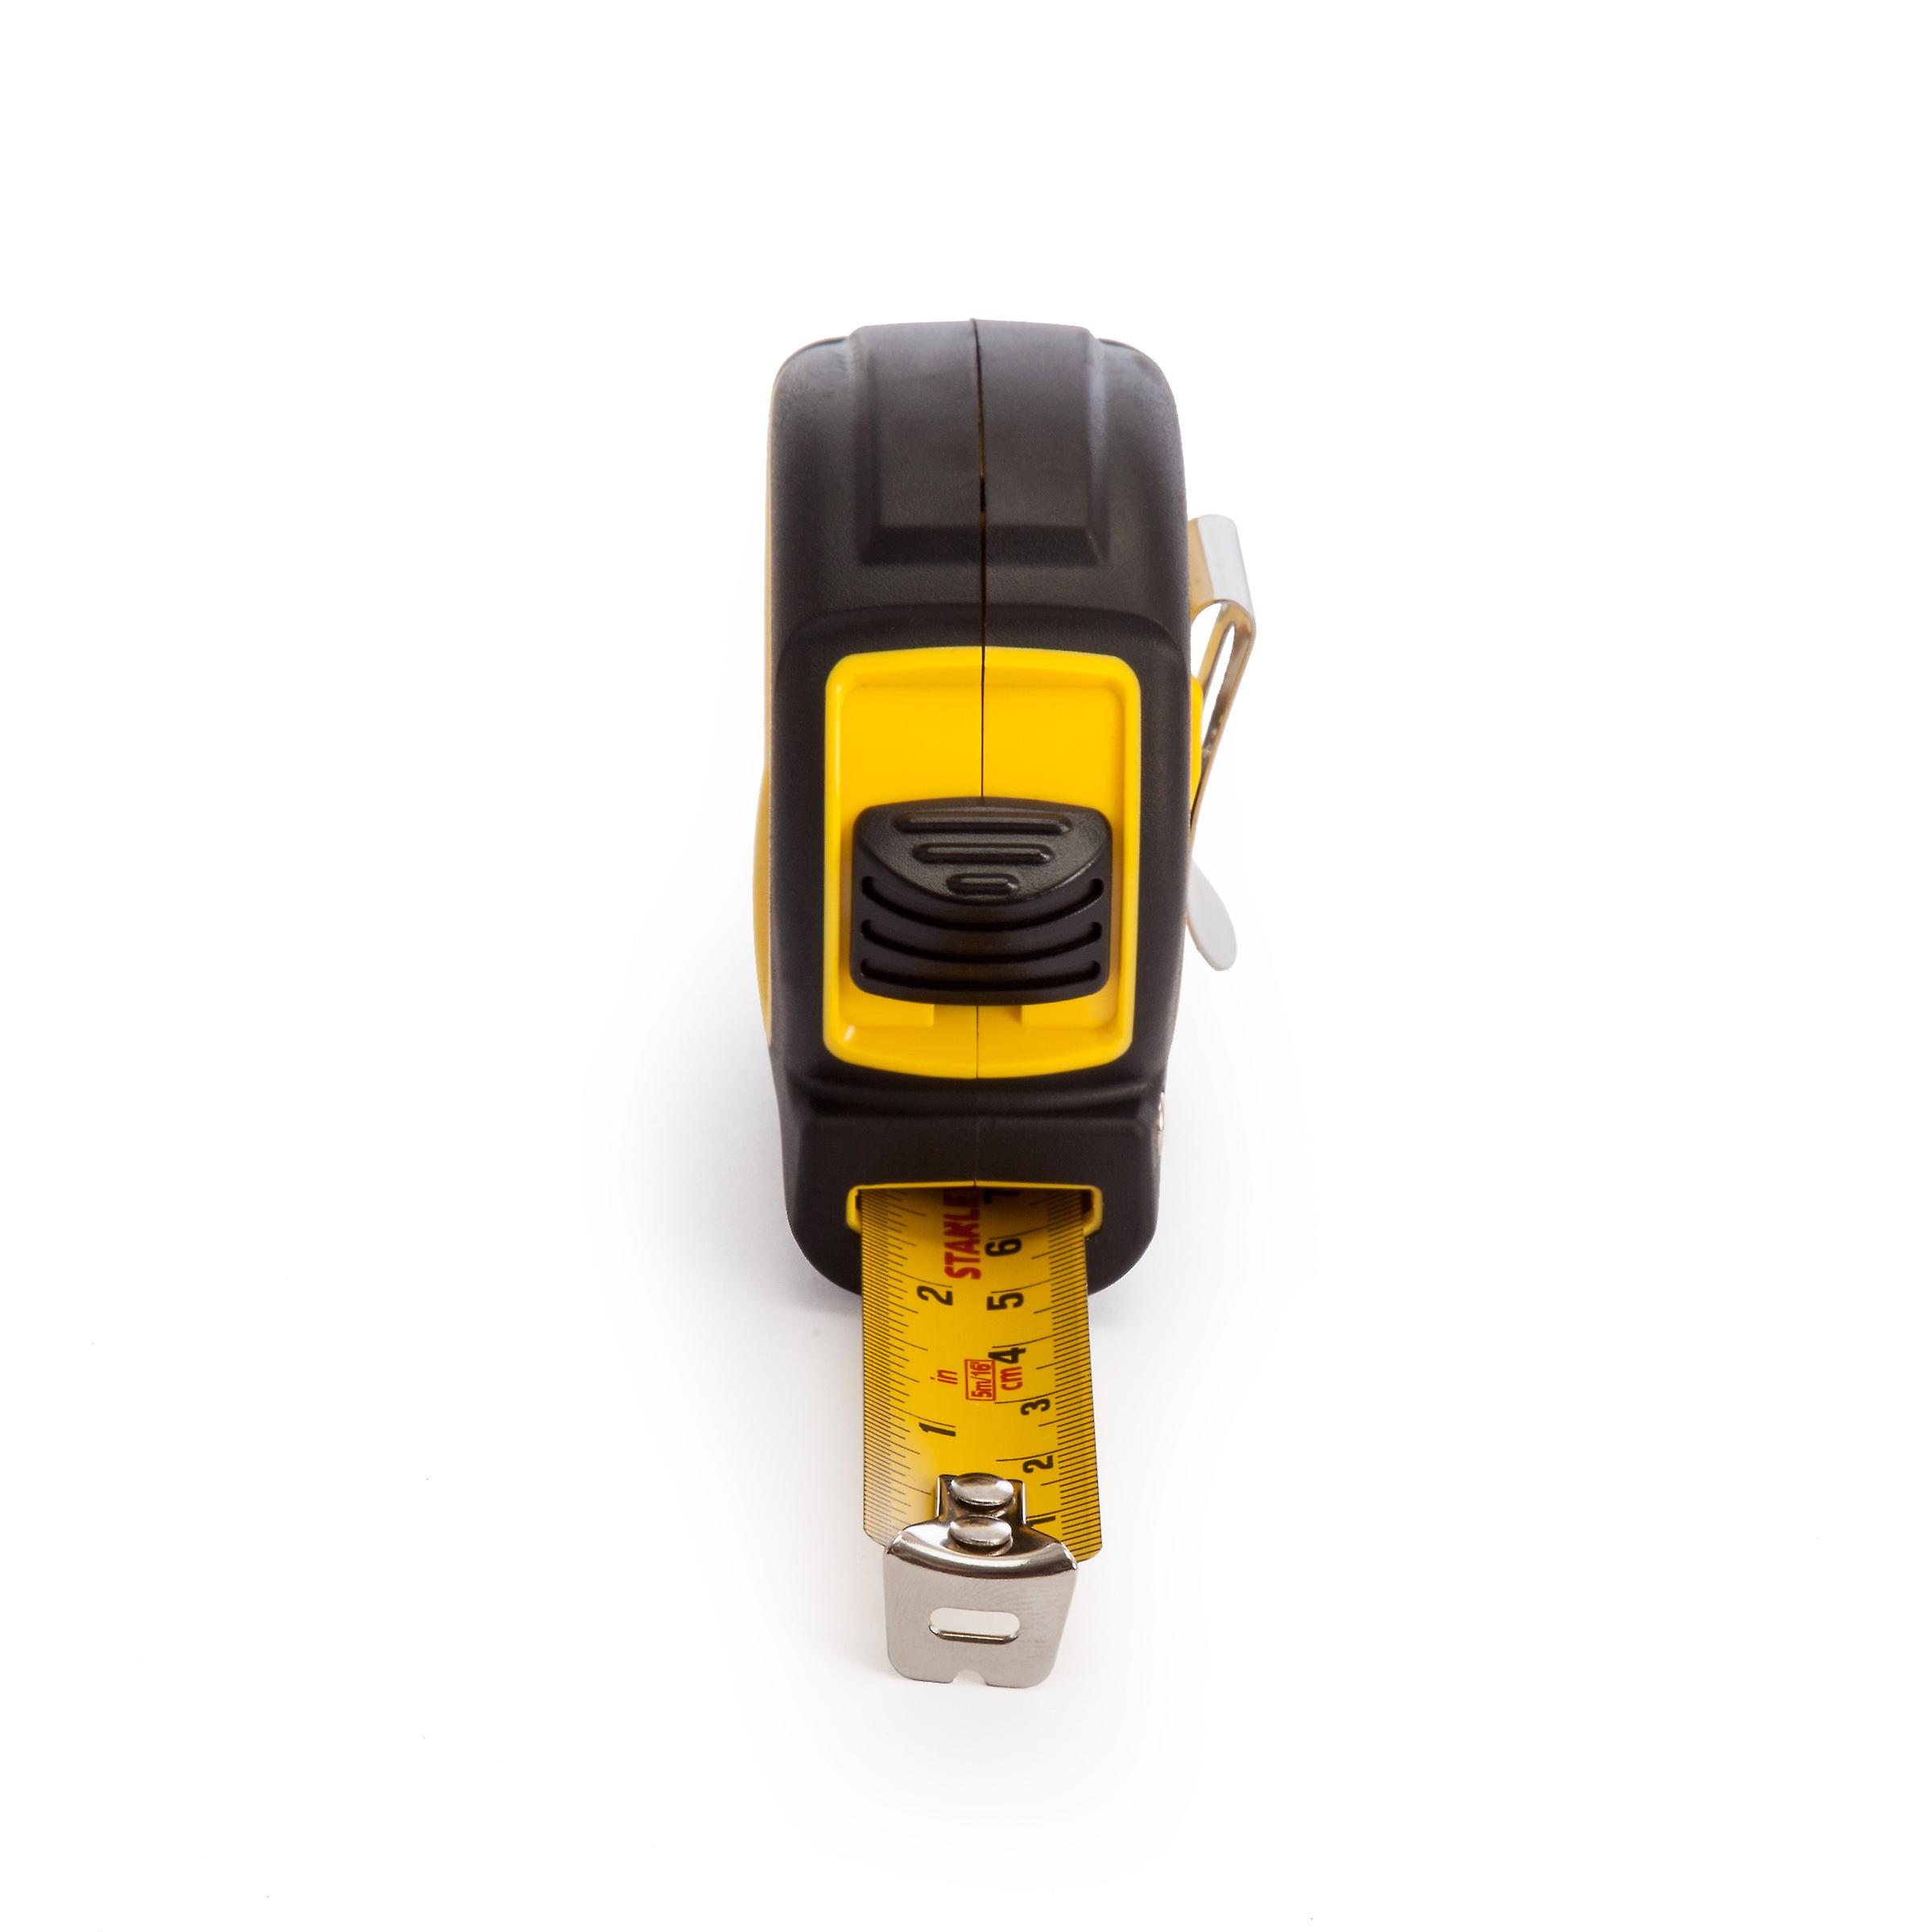 Stanley 1-30-696 5m/16ft Metric/Imperial Tape Measure With 19mm Blade